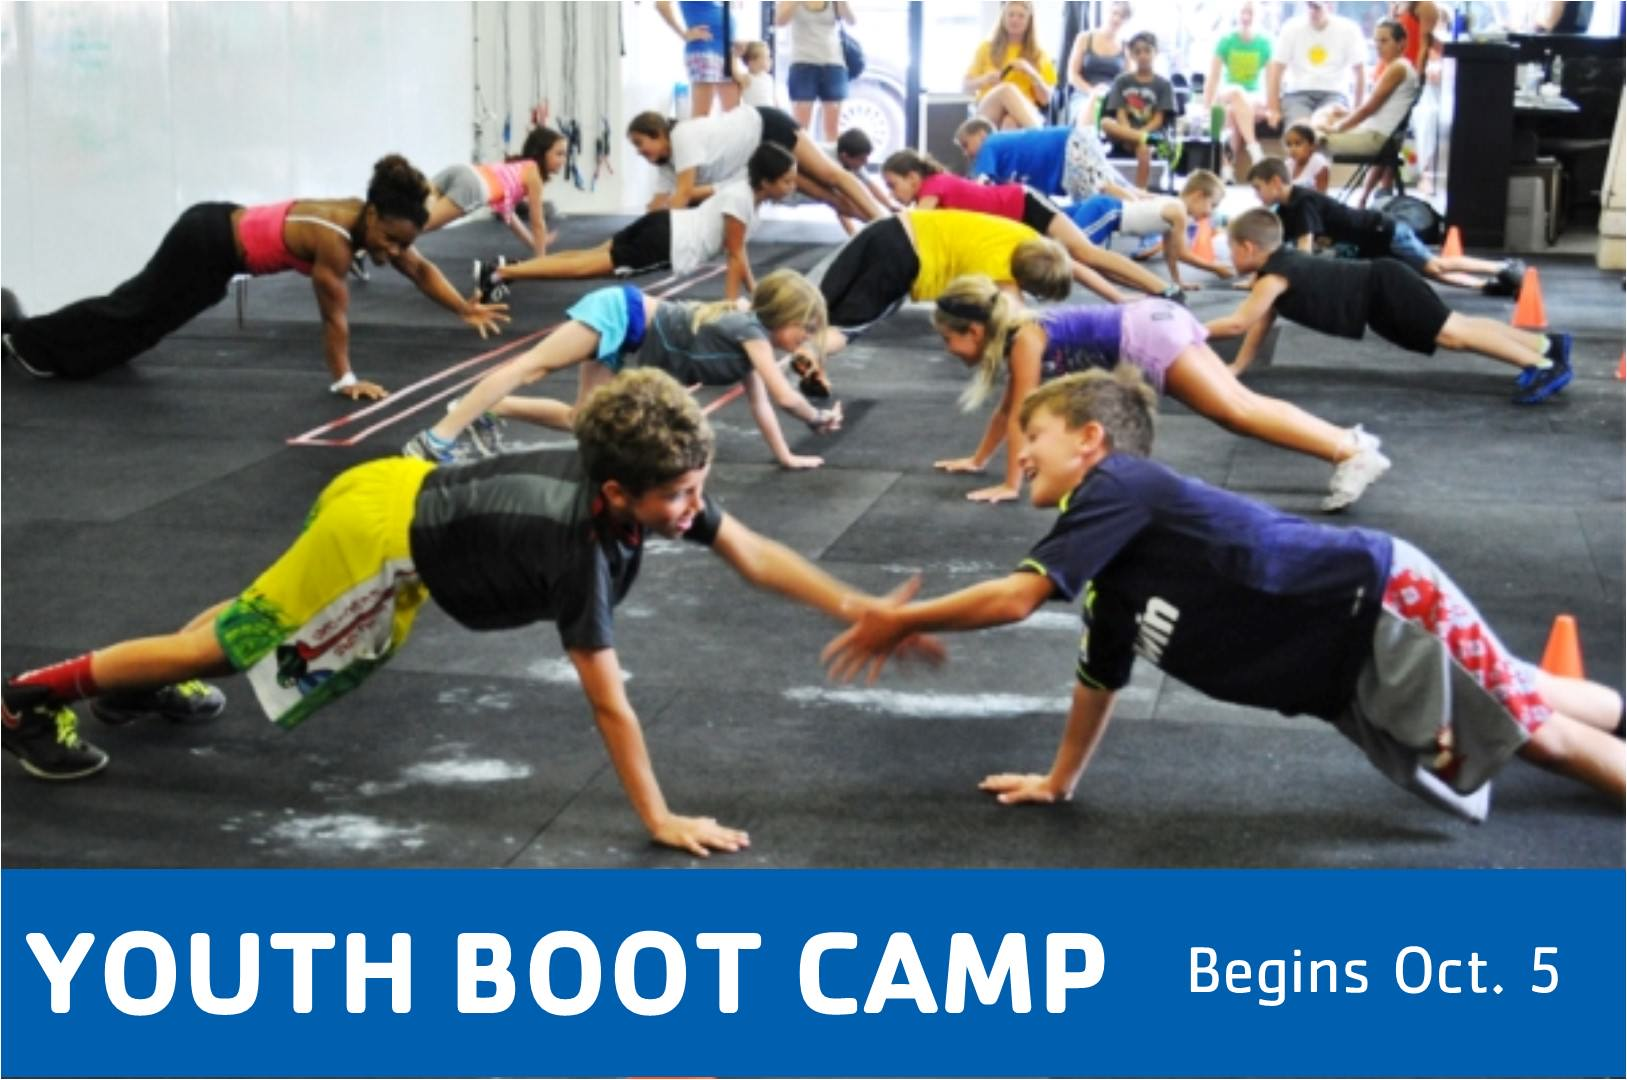 Youth Boot Camp